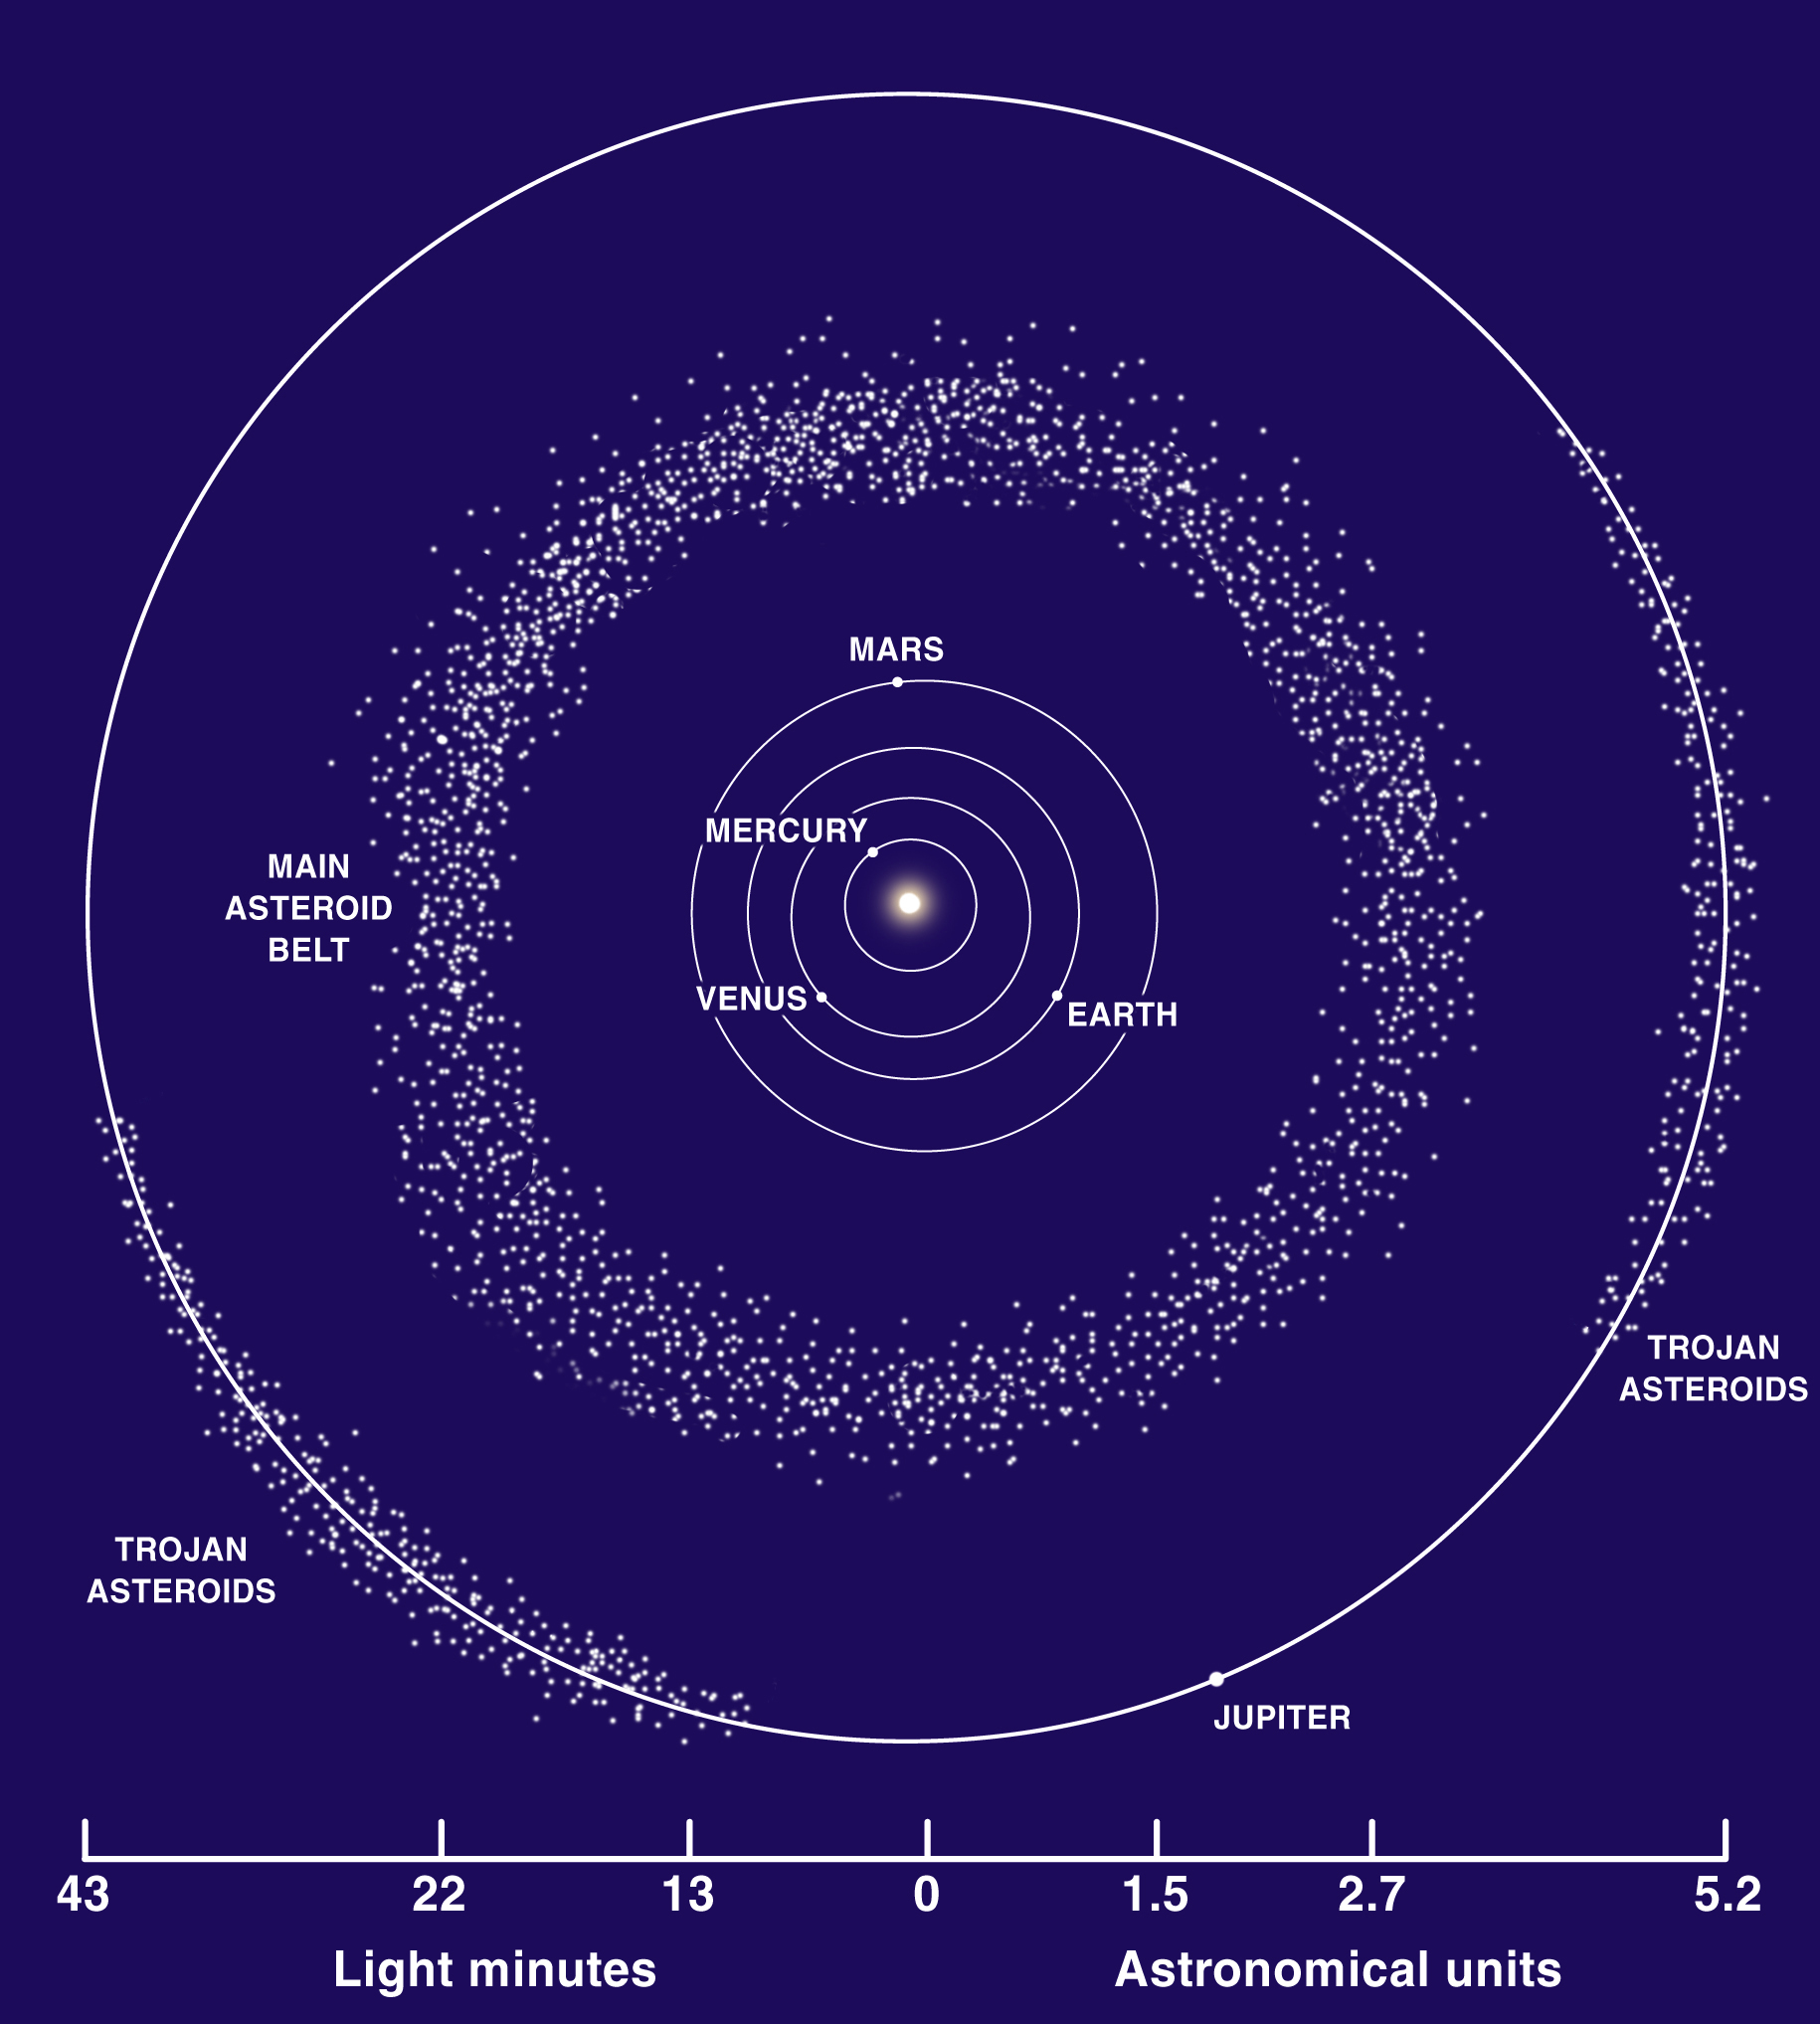 Asteroid_Belt__NASA.jpg